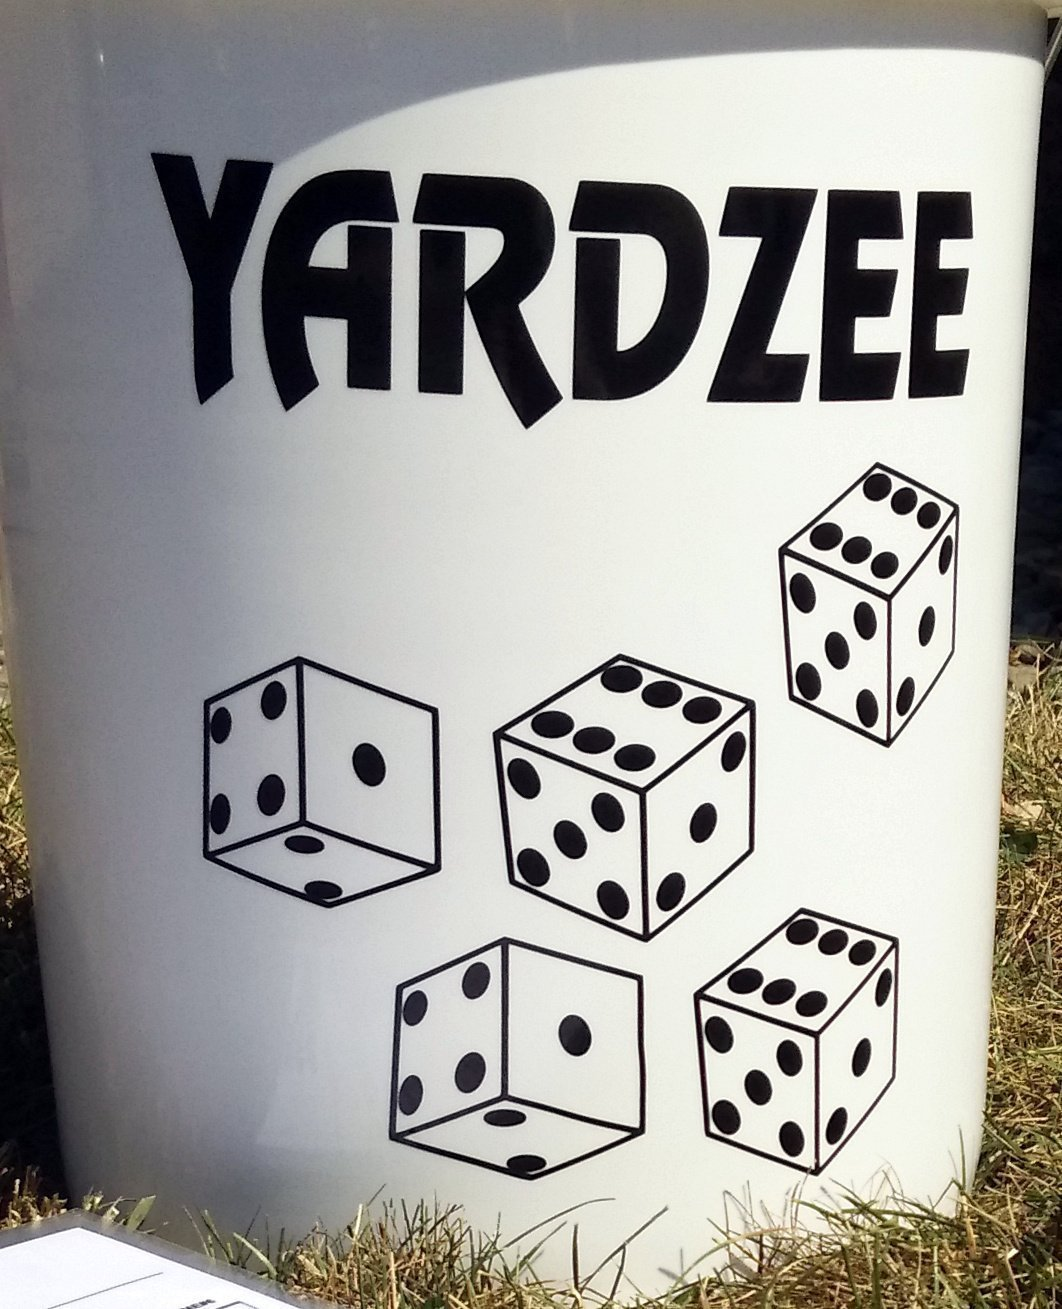 Personalized YARDZEE Bucket Decal & Laminated Scorecards Outdoor Lawn Yard  Dice Farkle Game Gift.